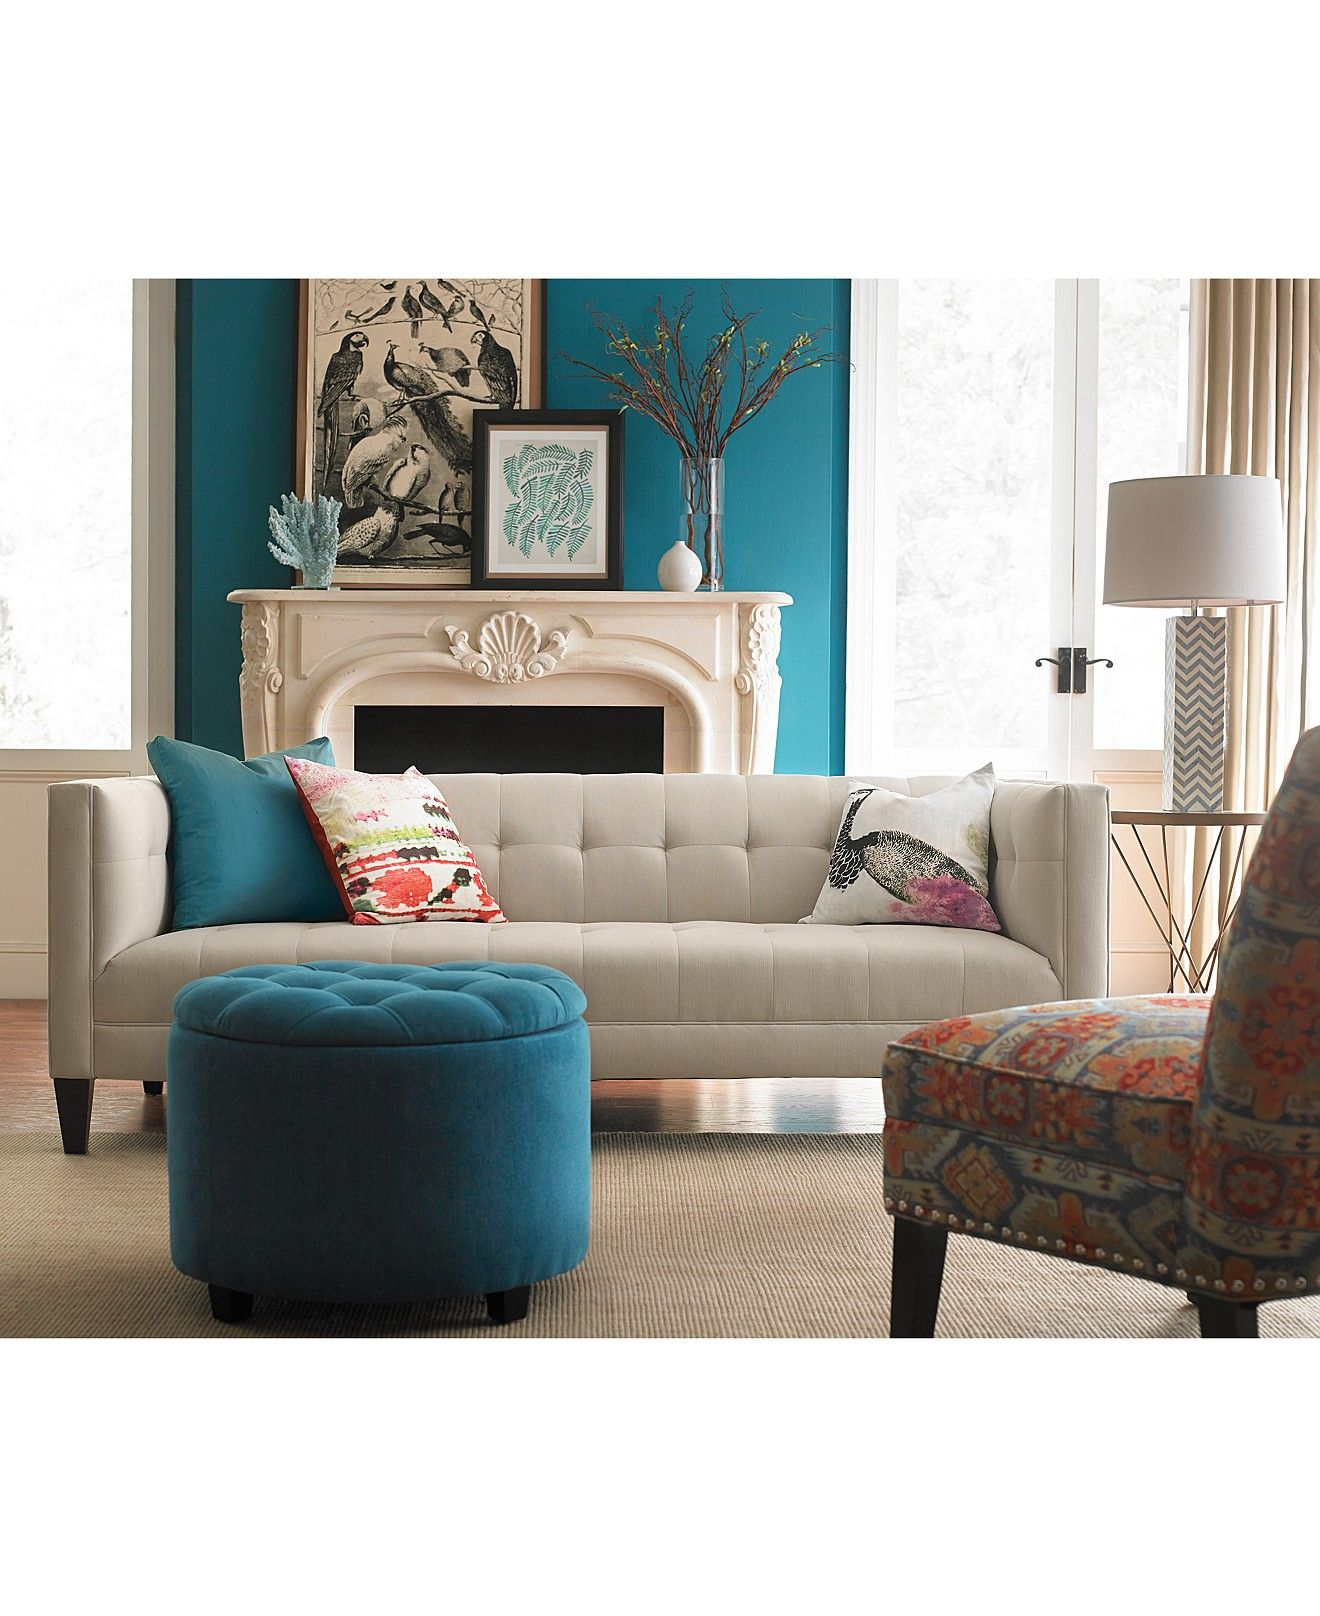 Macys Furnitue: Briel Tufted Tight Back & Seat Sofa Collection